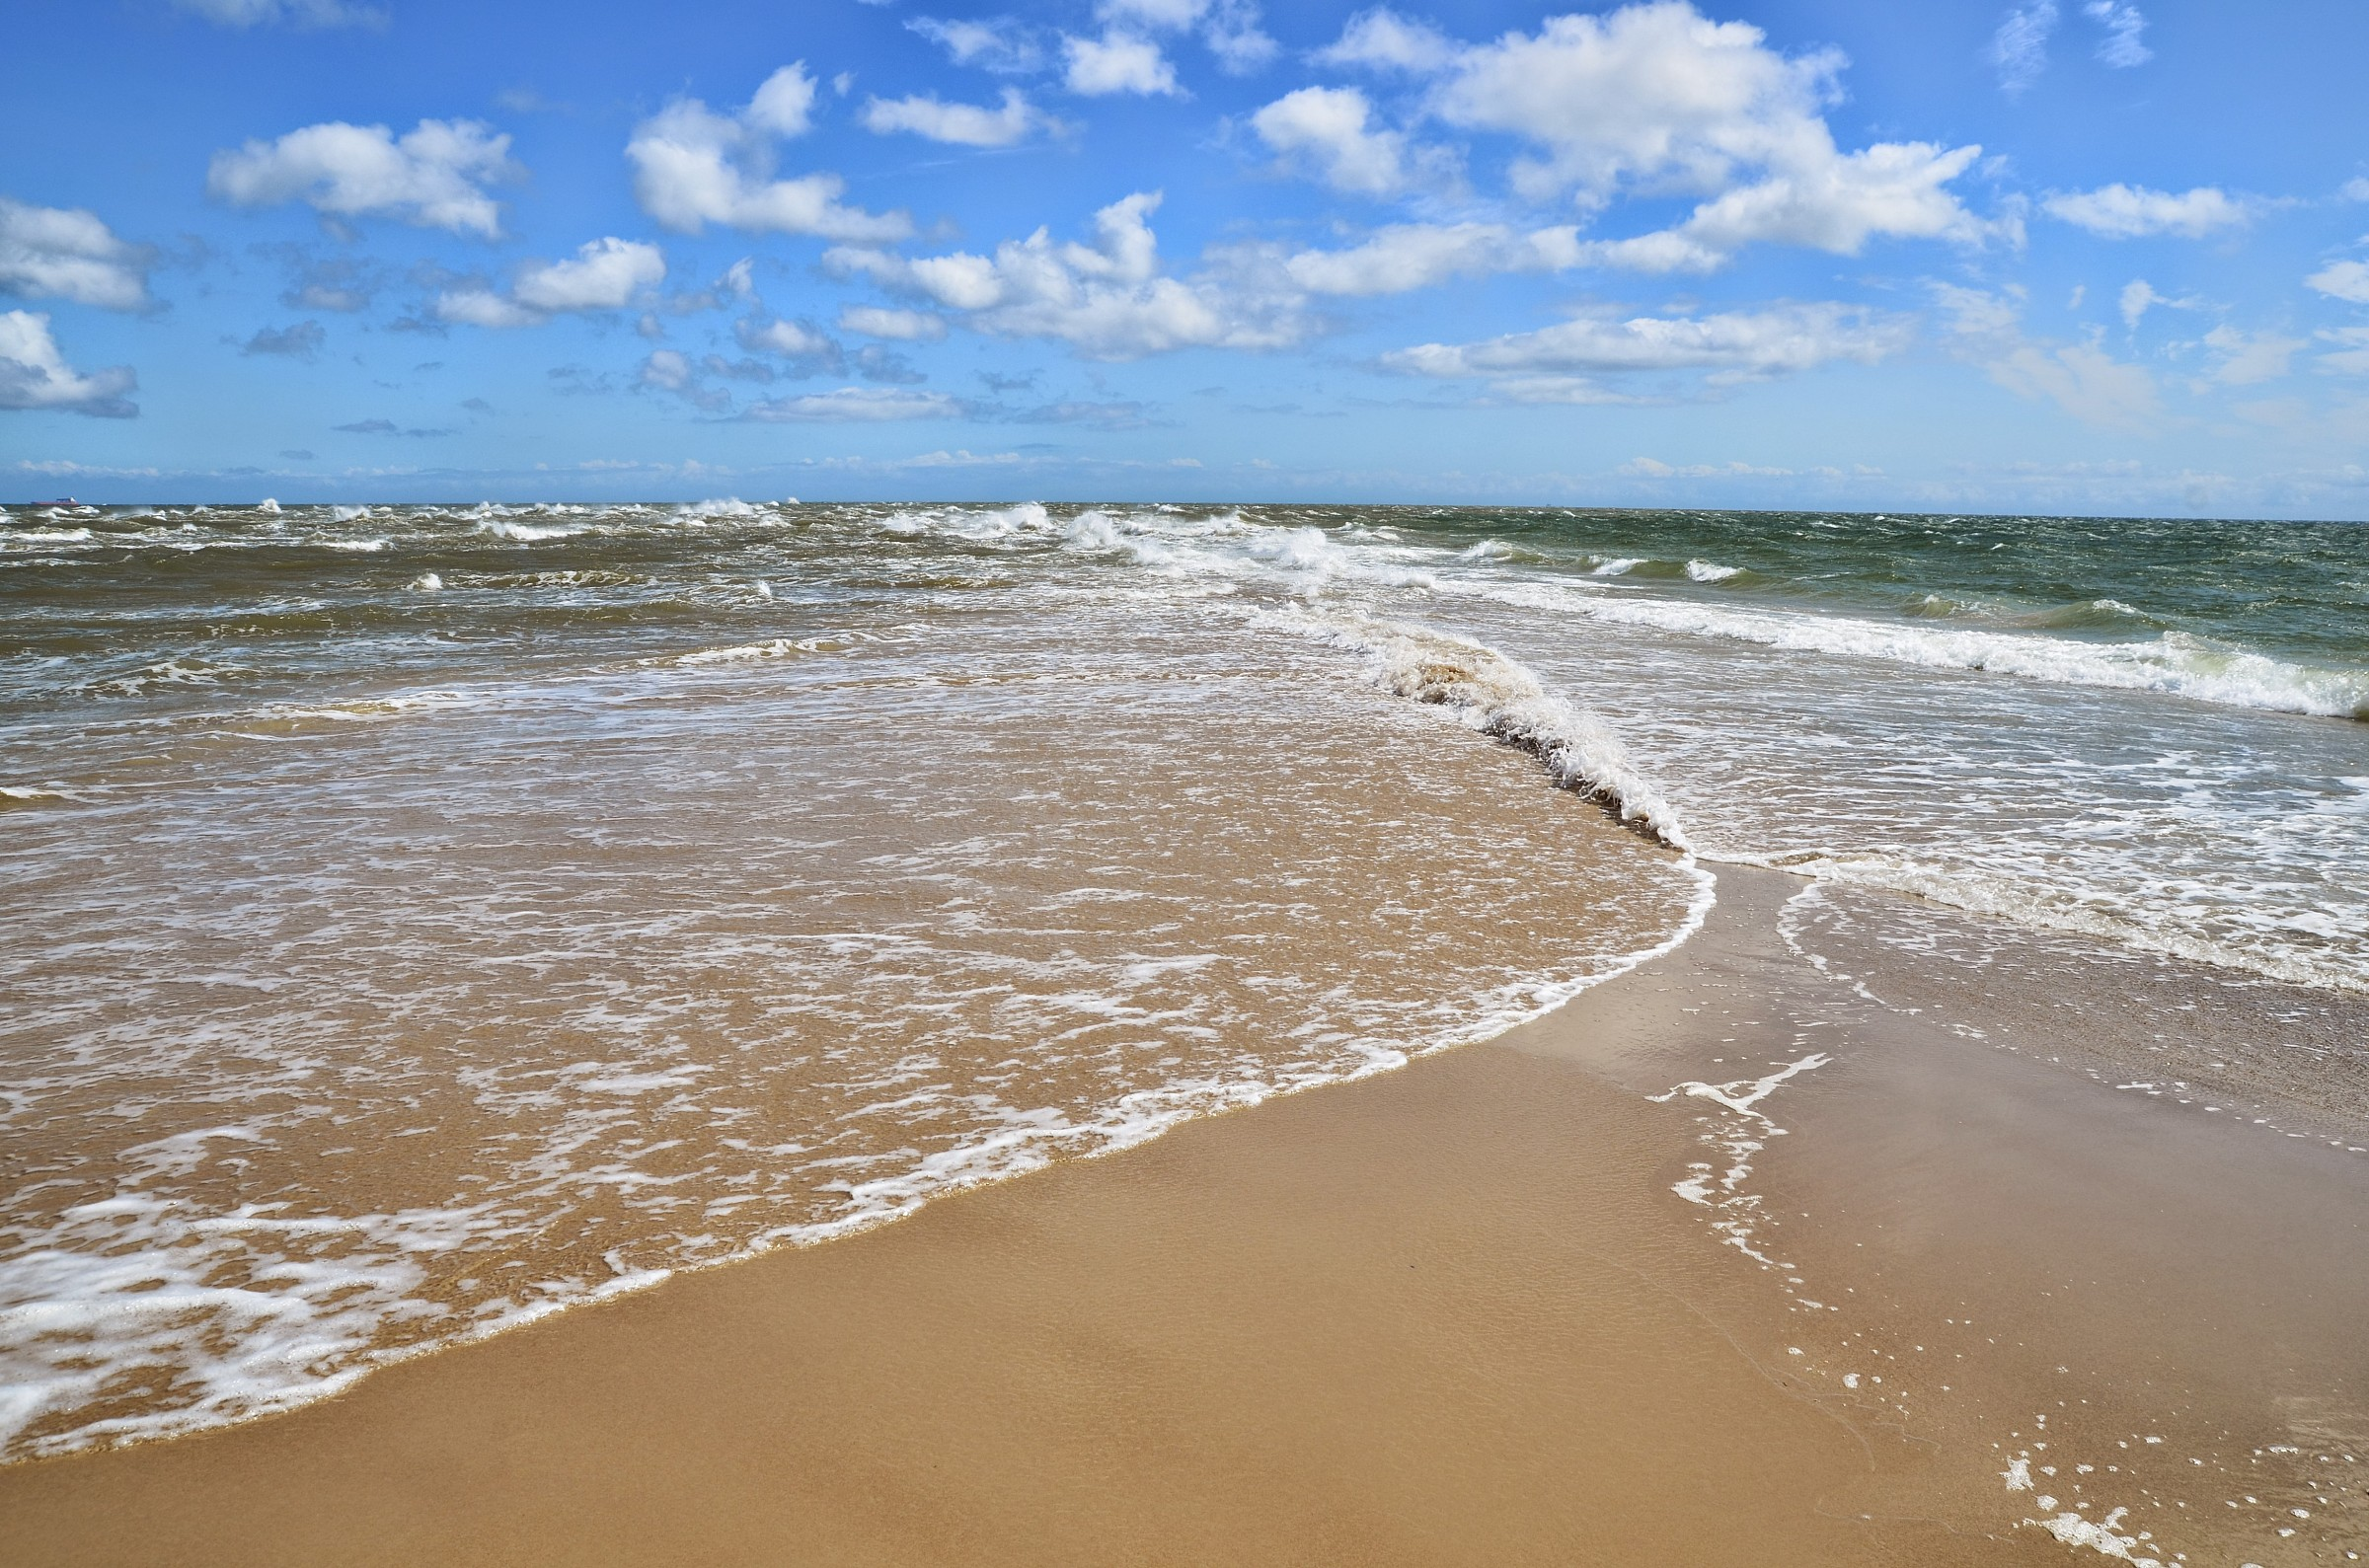 Stage two seas that meet and do not mix t...